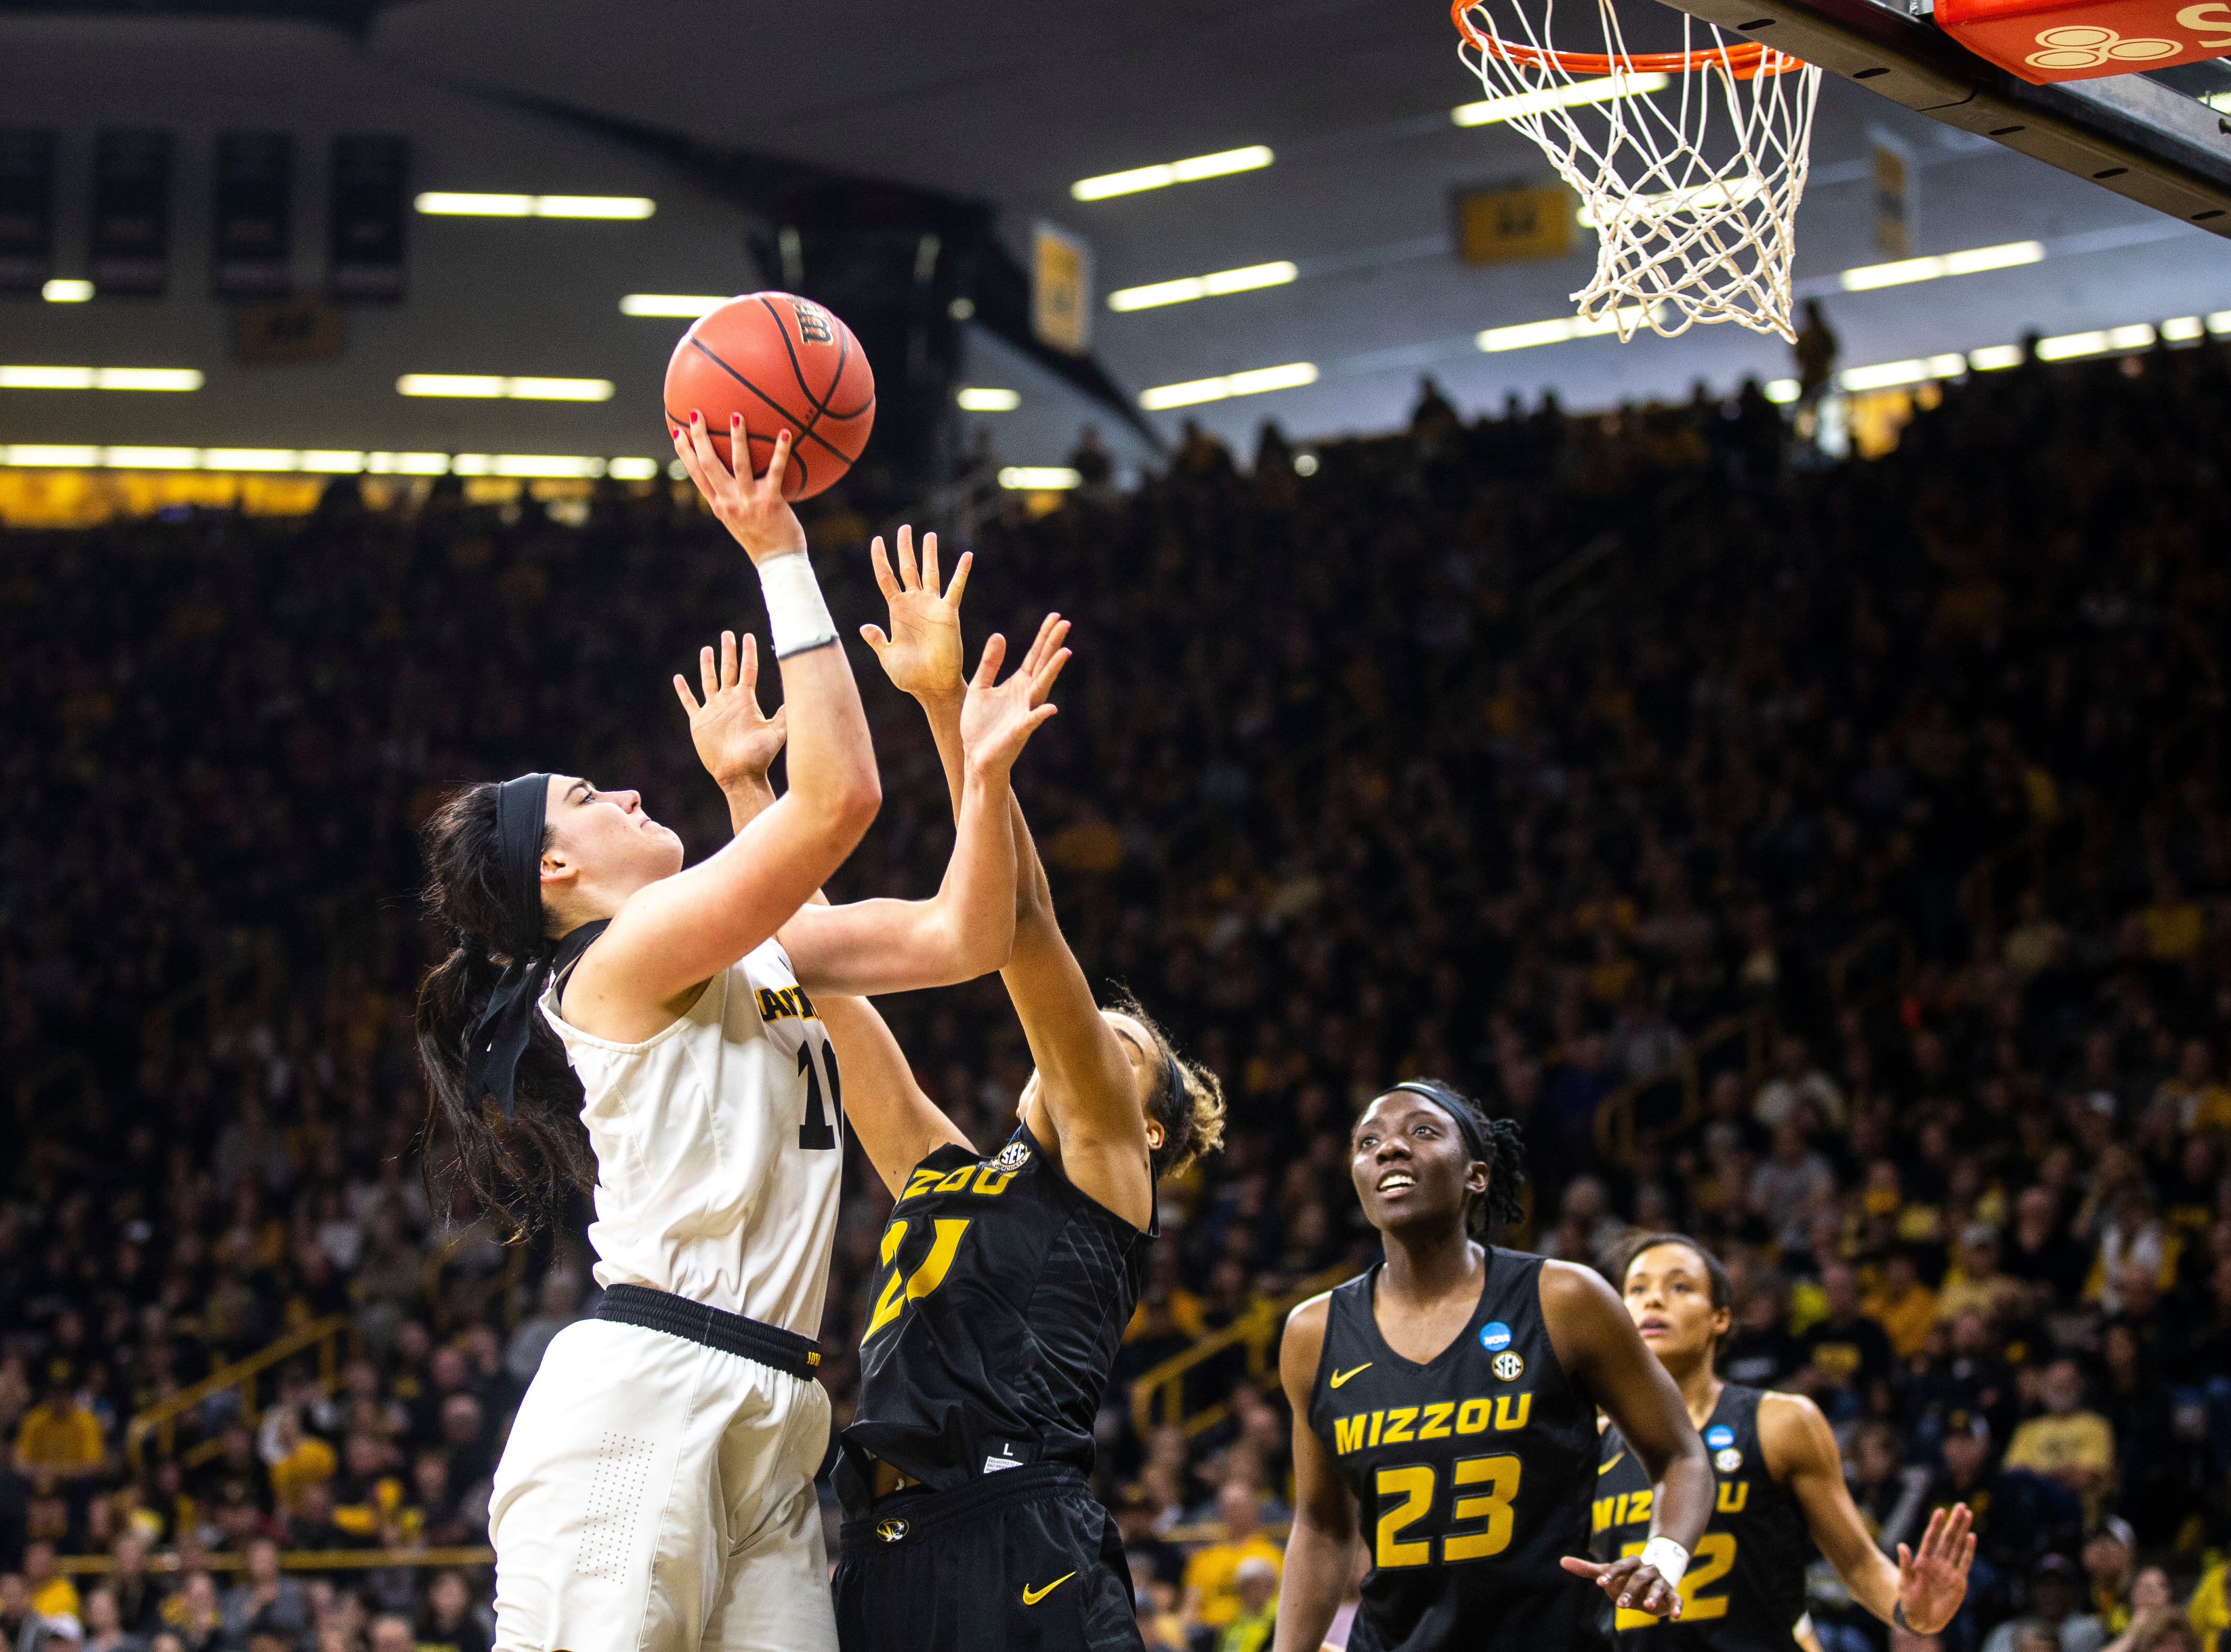 Iowa center Megan Gustafson (10) drives to the basket against Missouri forward Cierra Porter (21) during a NCAA women's basketball tournament second-round game, Sunday, March 24, 2019, at Carver-Hawkeye Arena in Iowa City, Iowa.